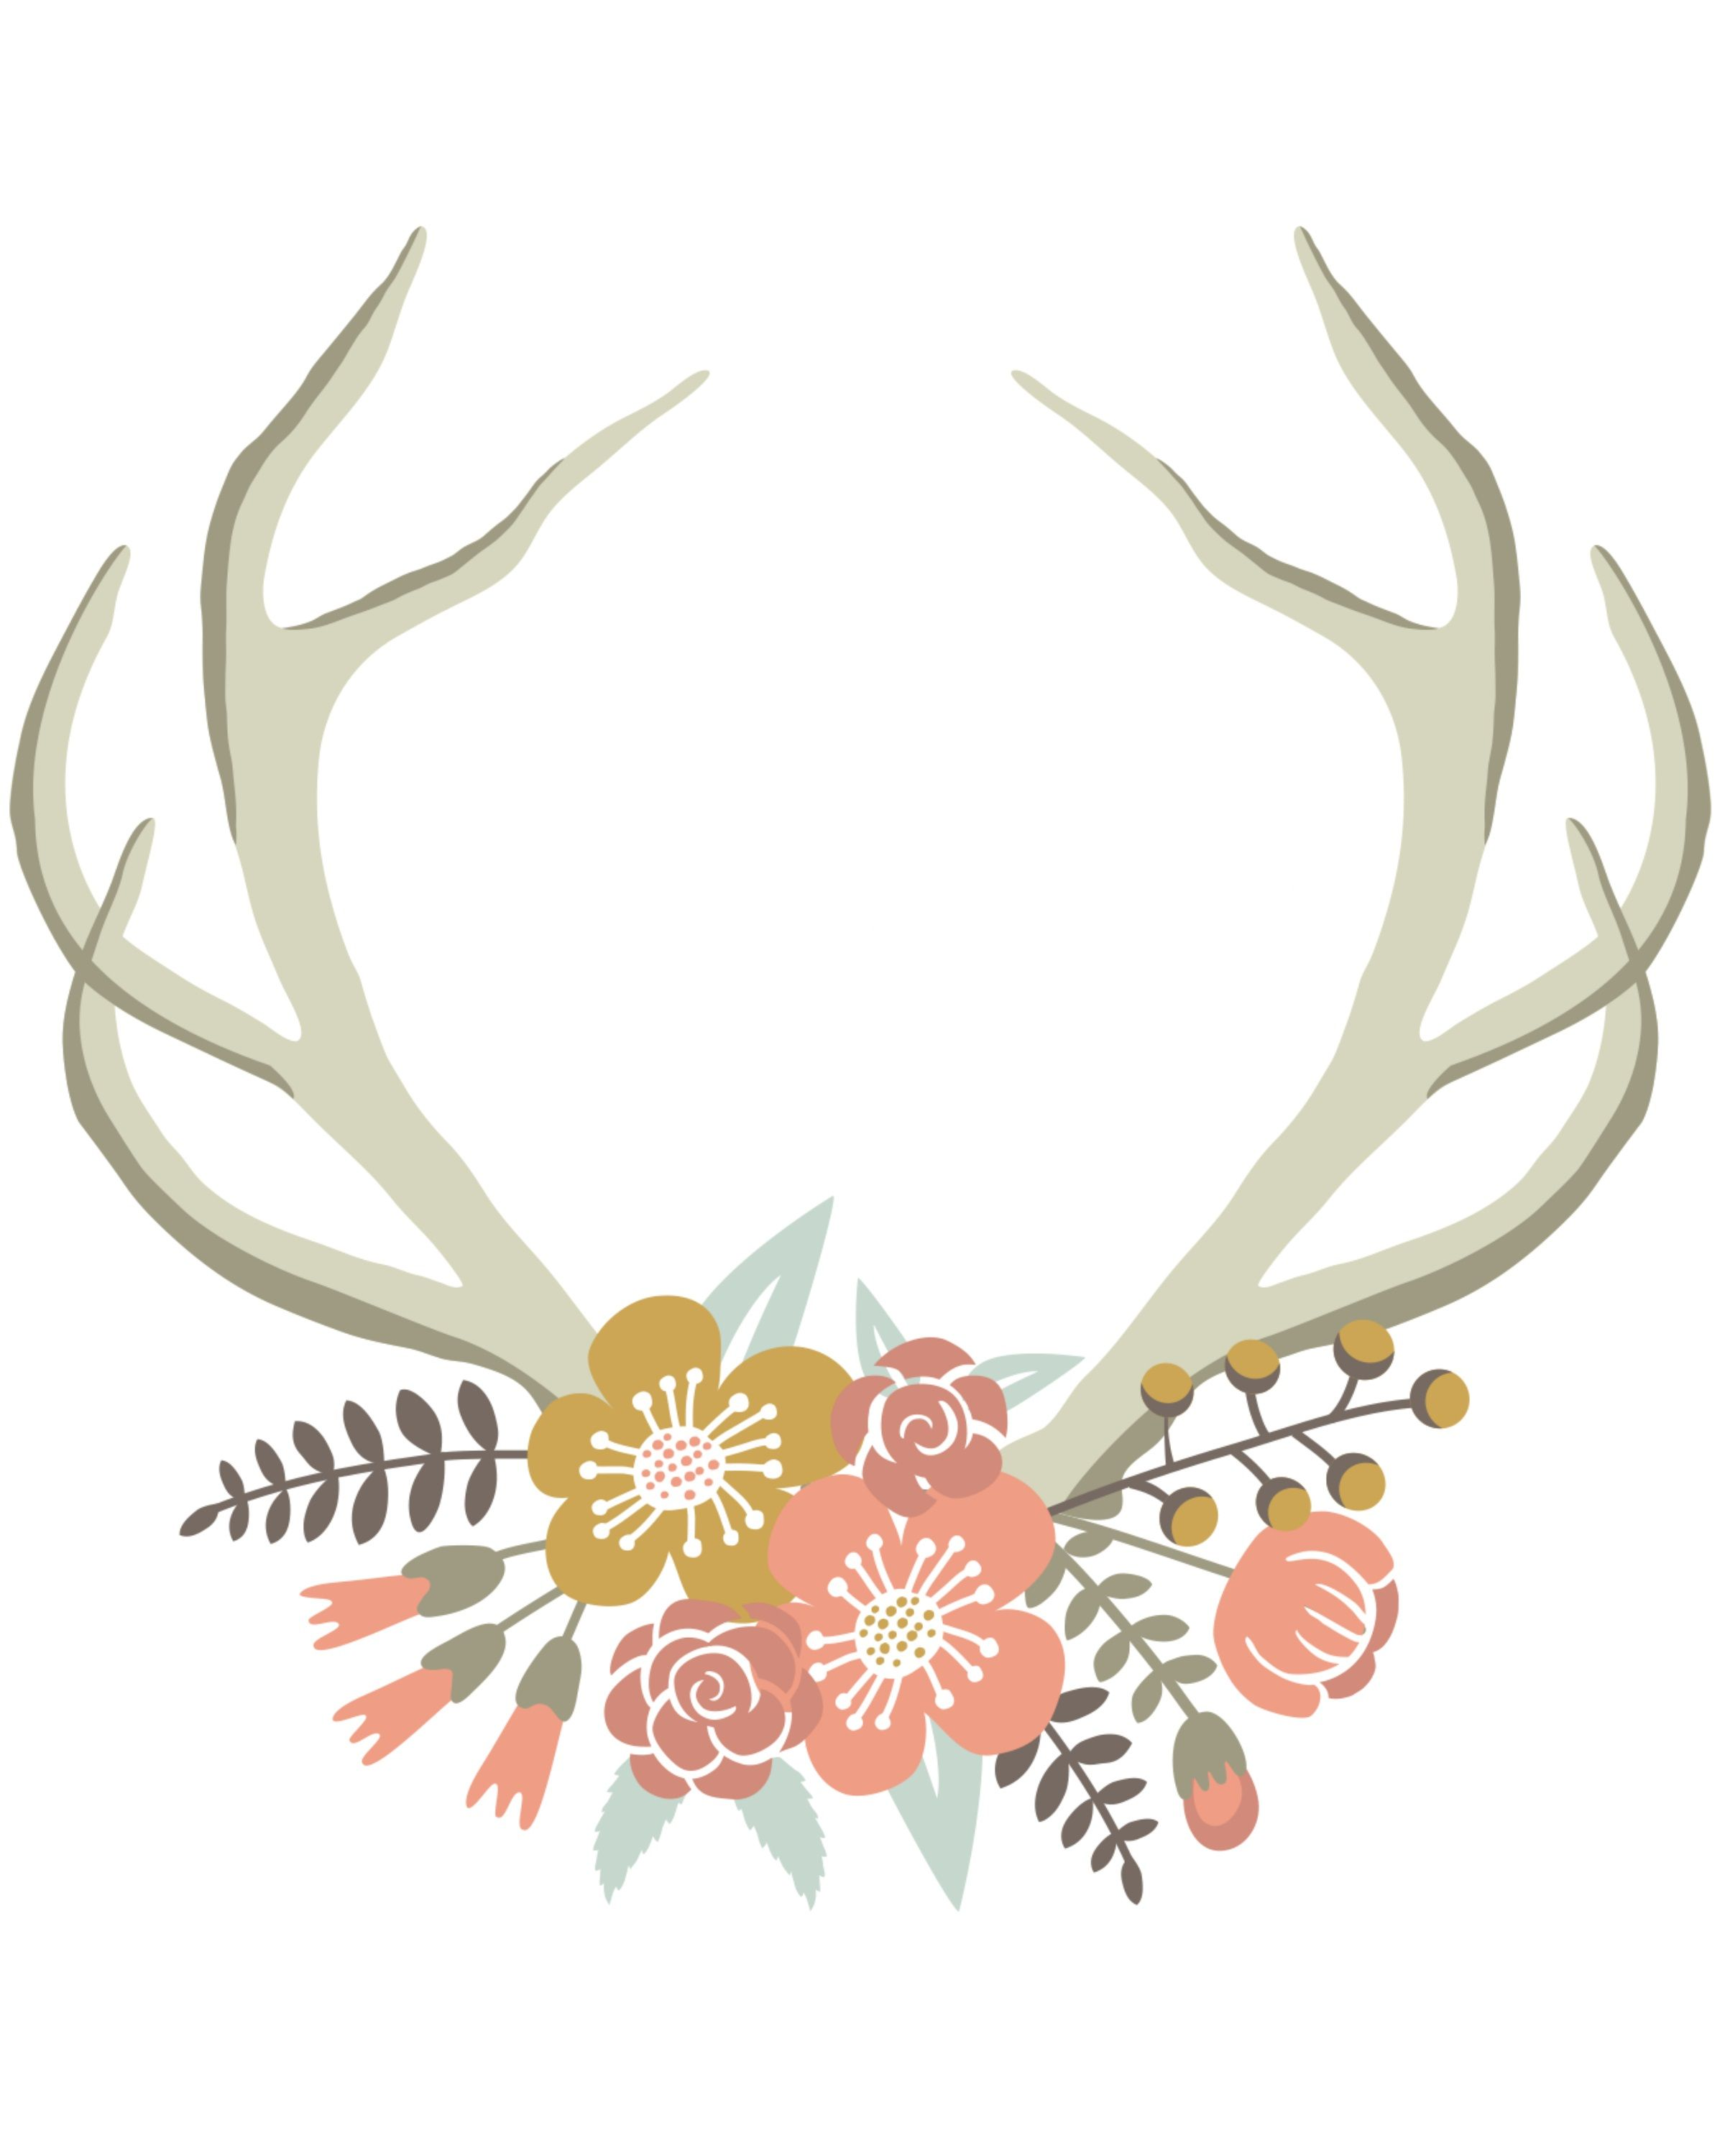 Floral Deer Crown free nursery or gallery wall printable. Download.